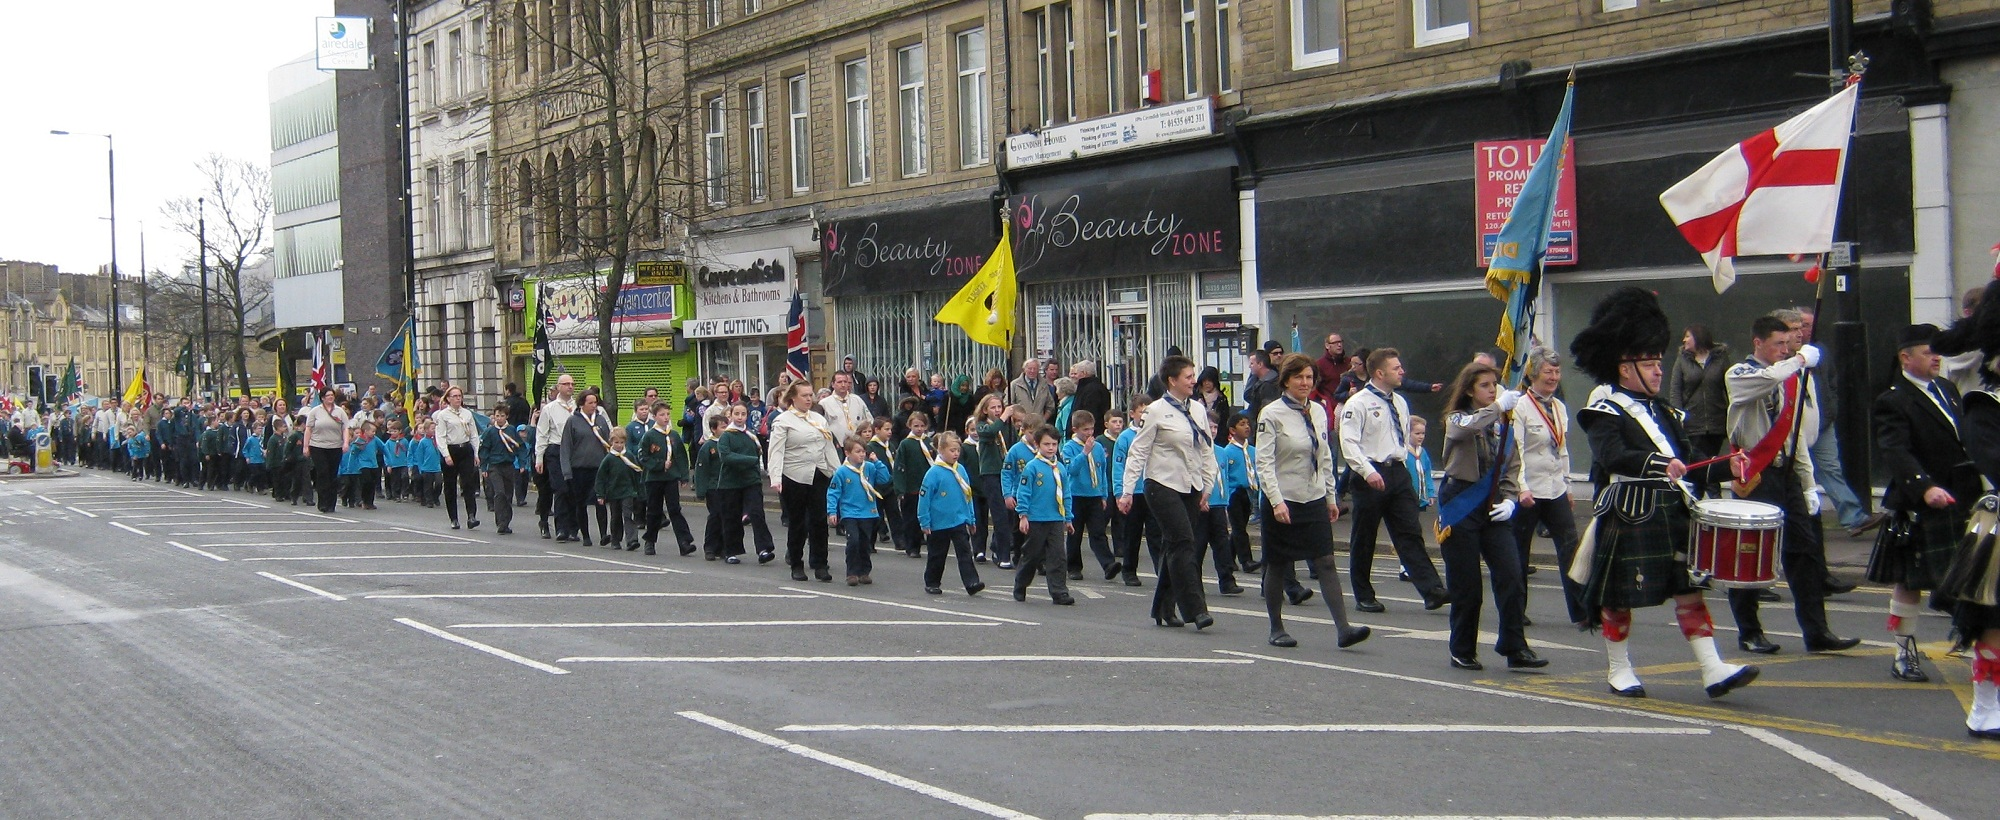 The St George's Day Scout parade makes its way along North Street in Keighley ahead of the service held at St Anne's Church